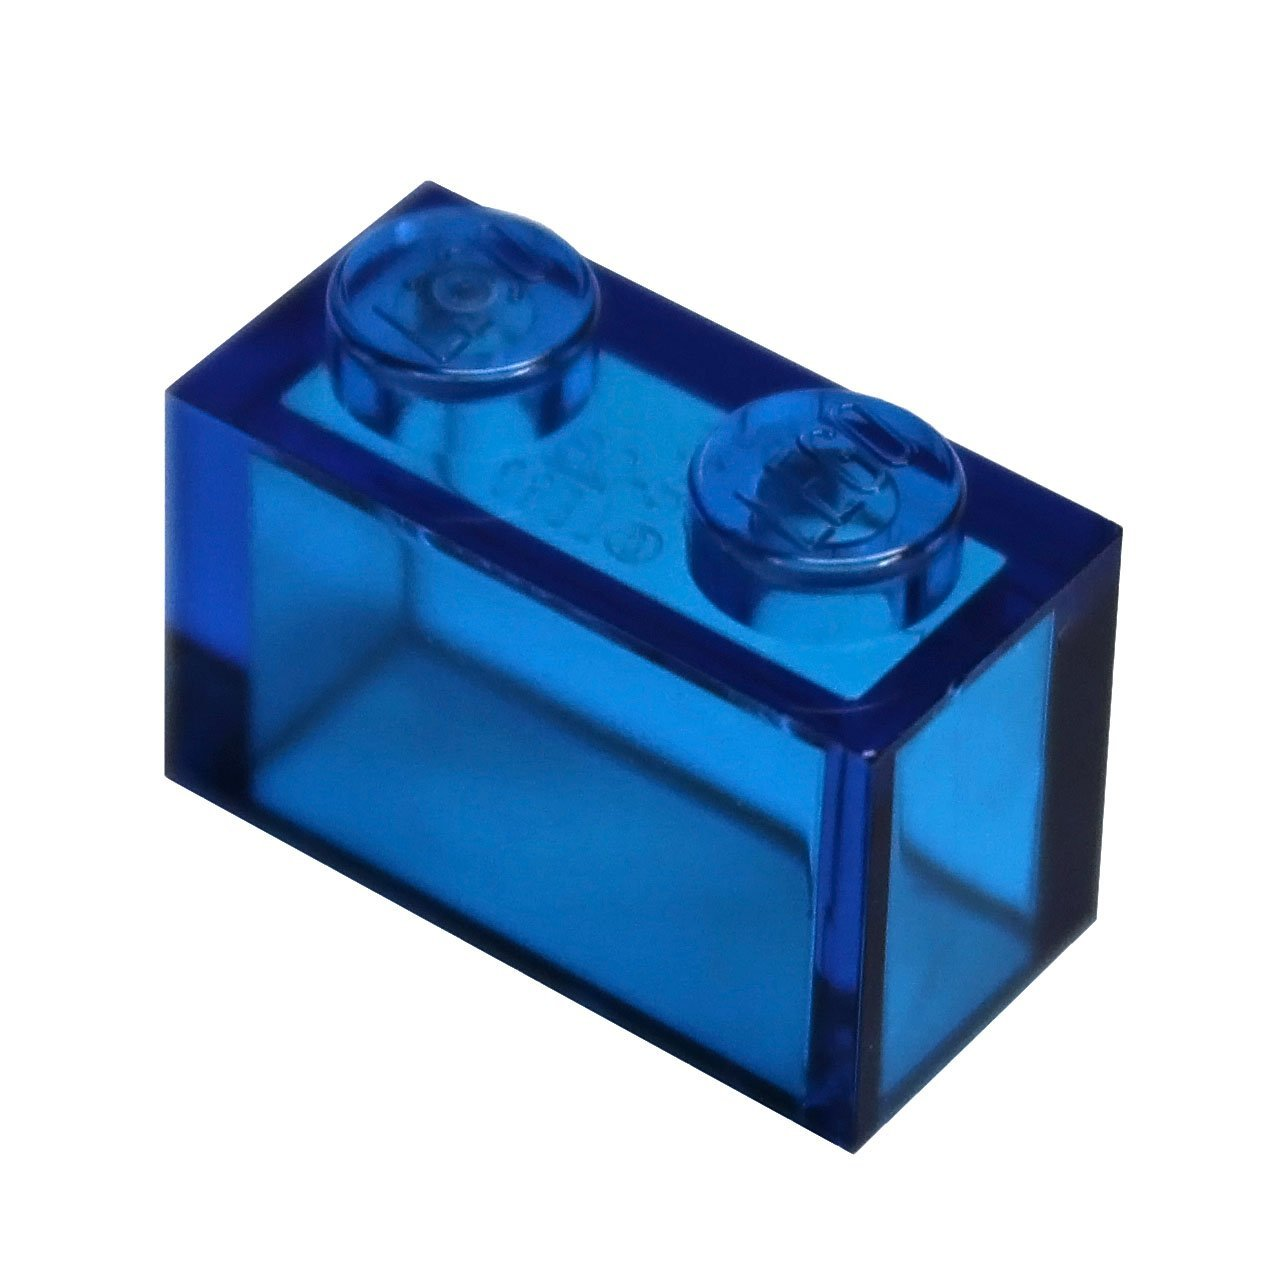 Transparent Clear Trans-Clear LEGO Parts and Pieces 1x2 Brick x200